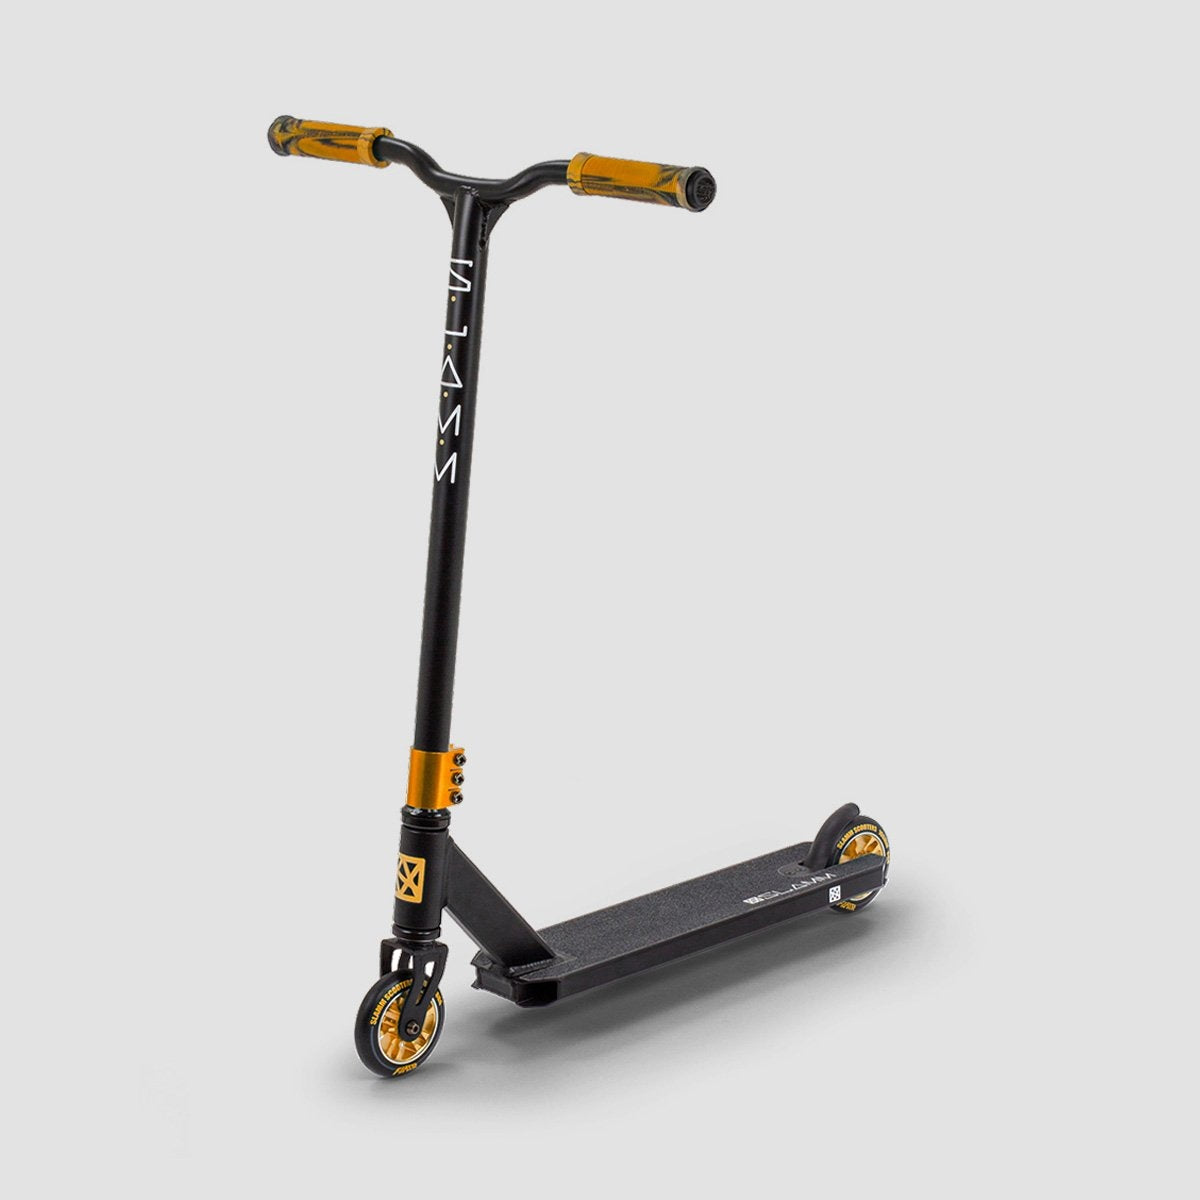 Slamm Classic VII Scooter Black/Gold - Scooter